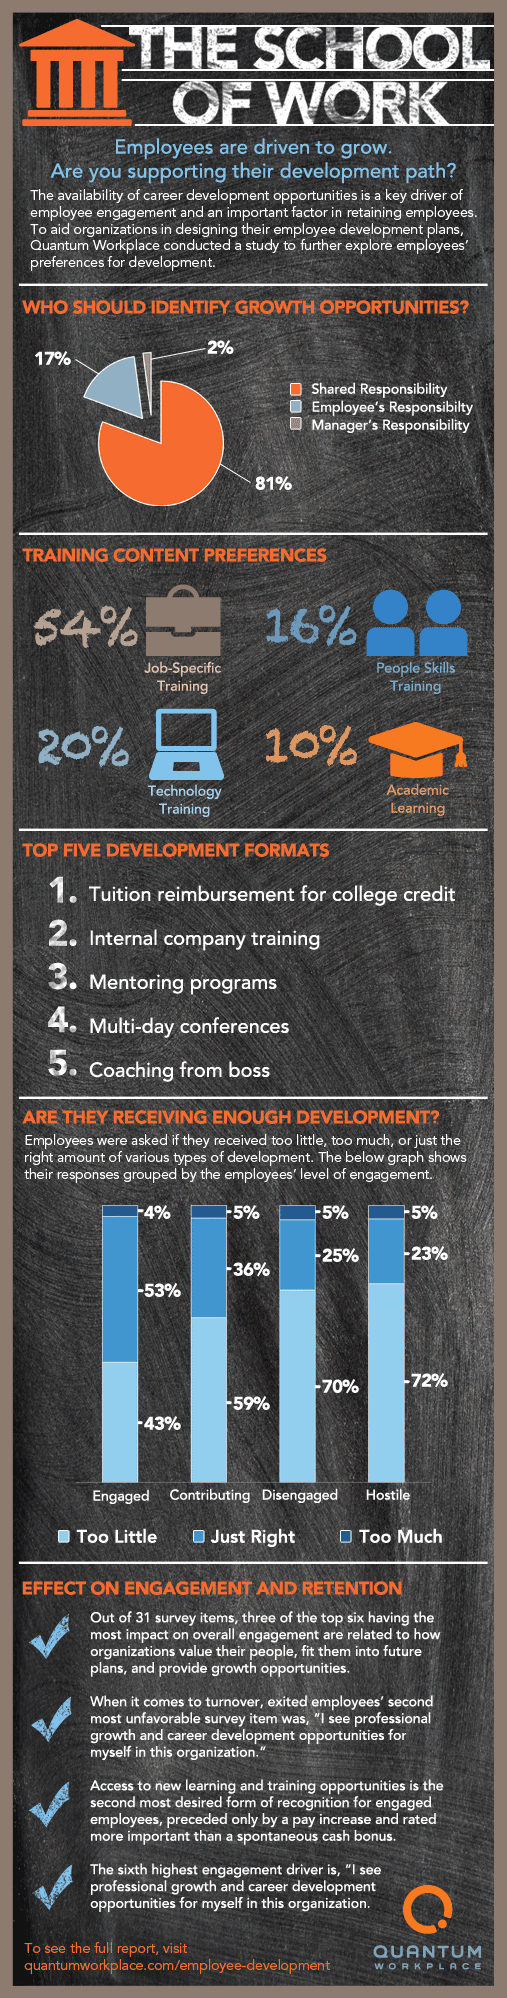 Employee-Engagement-Professional-Development-Career-Growth-Infographic